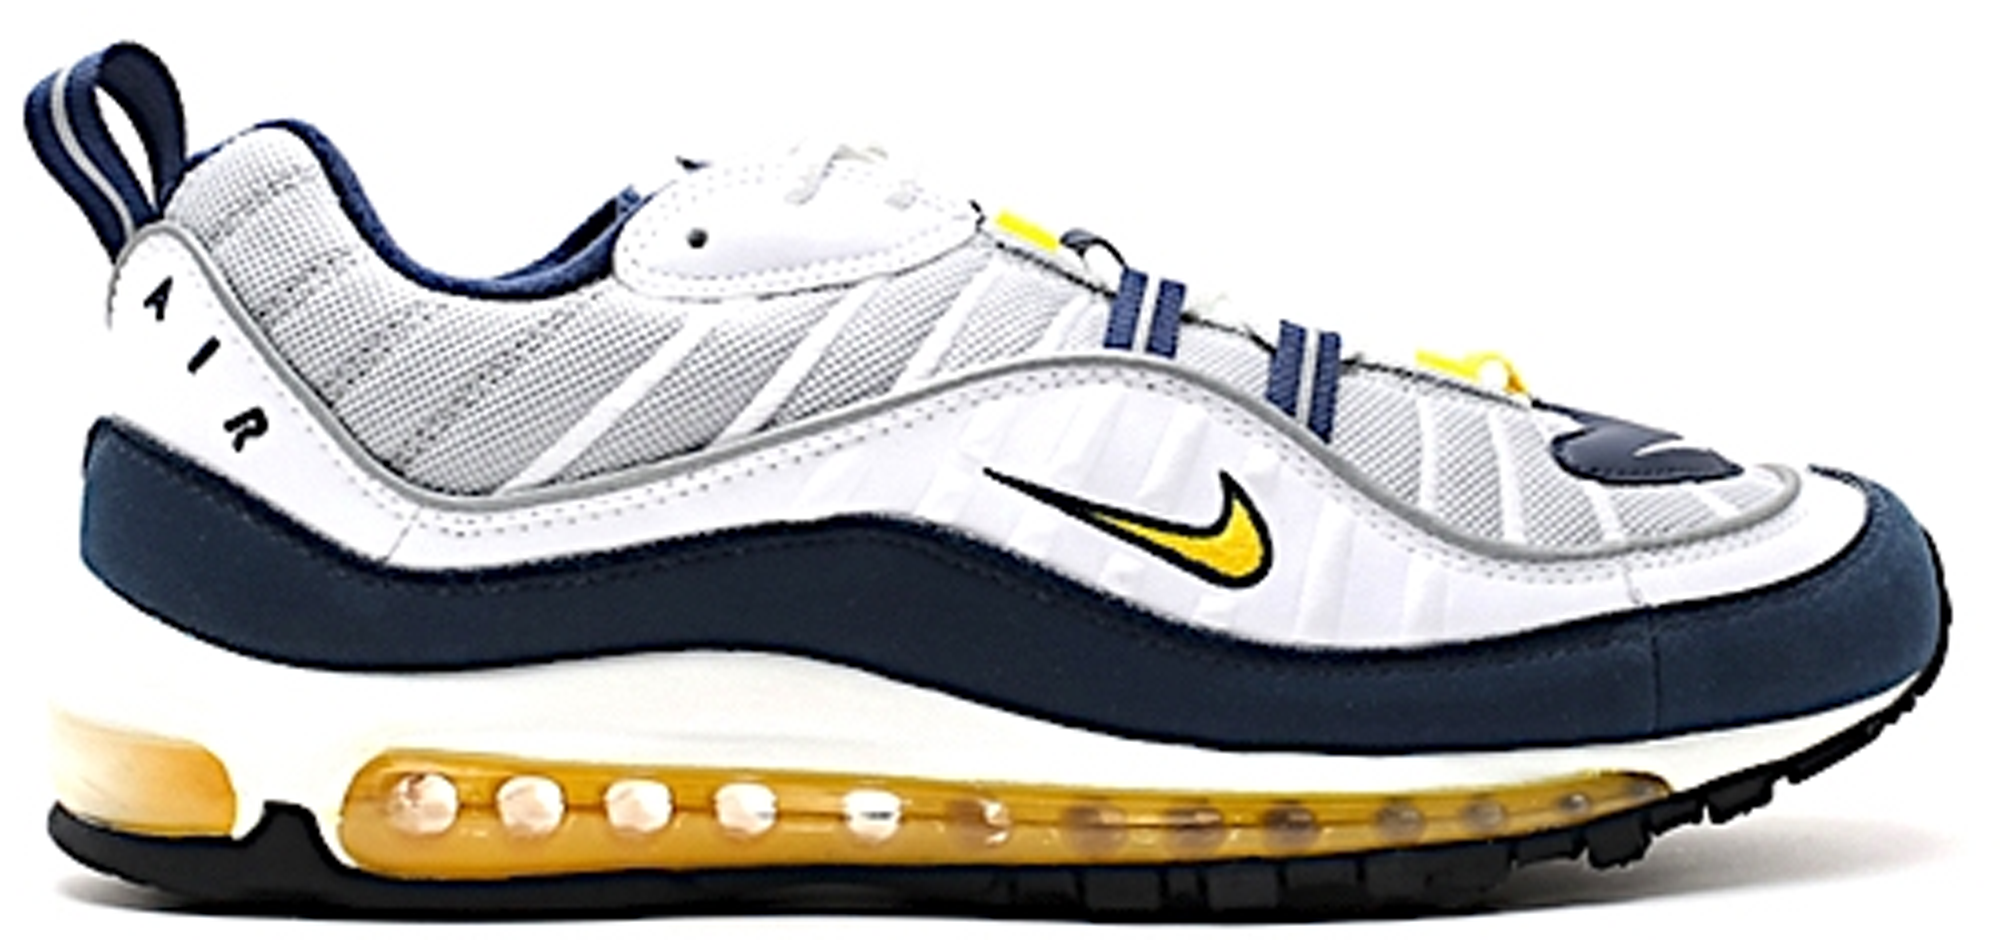 69520b81b1d910 ... coupon code for navy nike air max 98 lazada 6a9db 1ddff